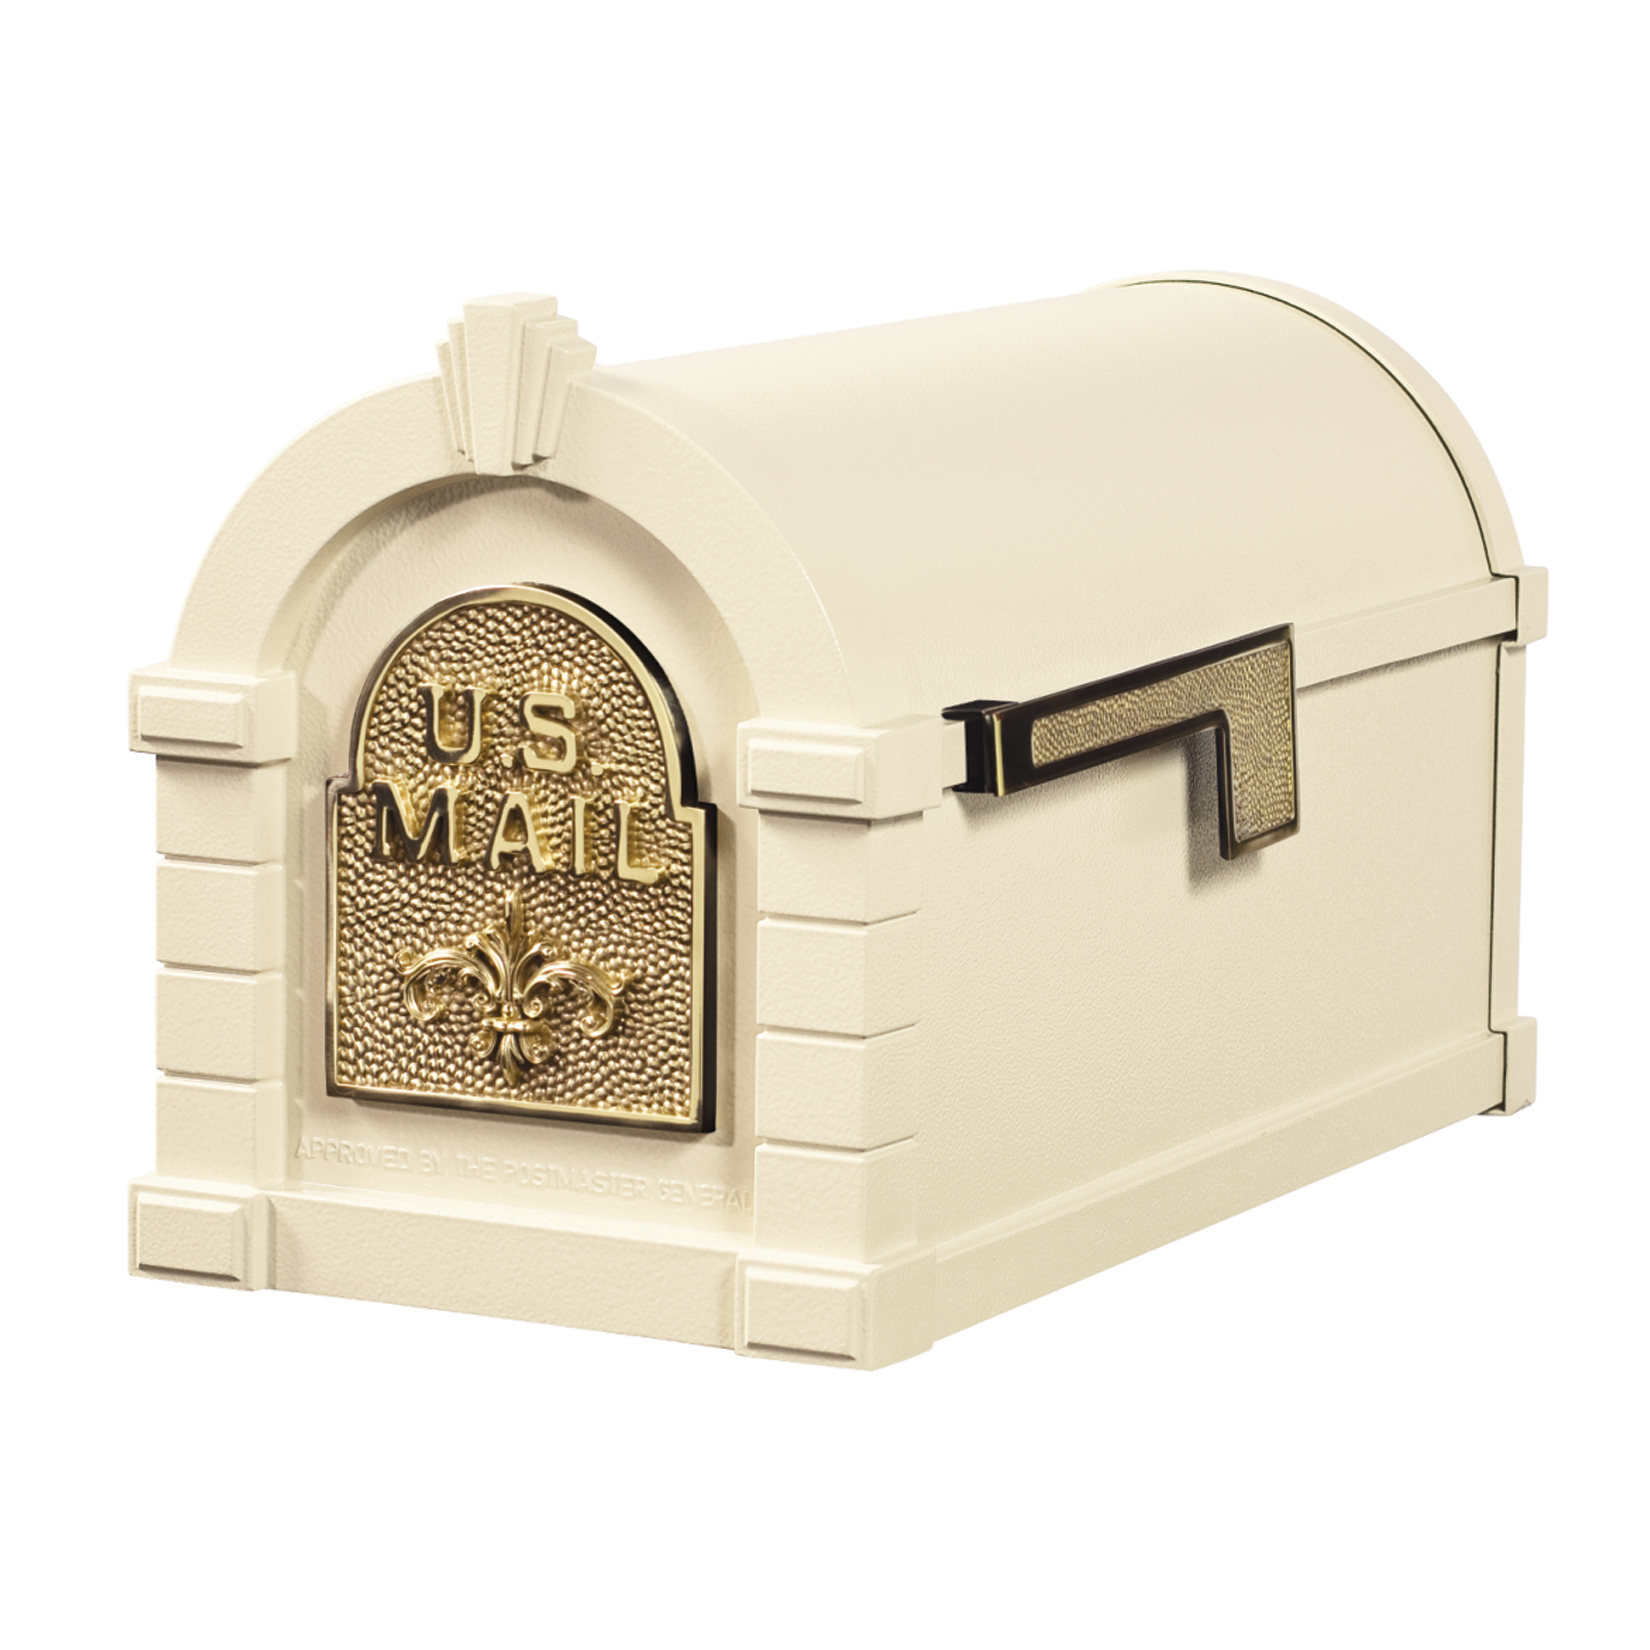 Gaines Fleur De Lis Keystone Mailboxes, Almond with Polished Brass